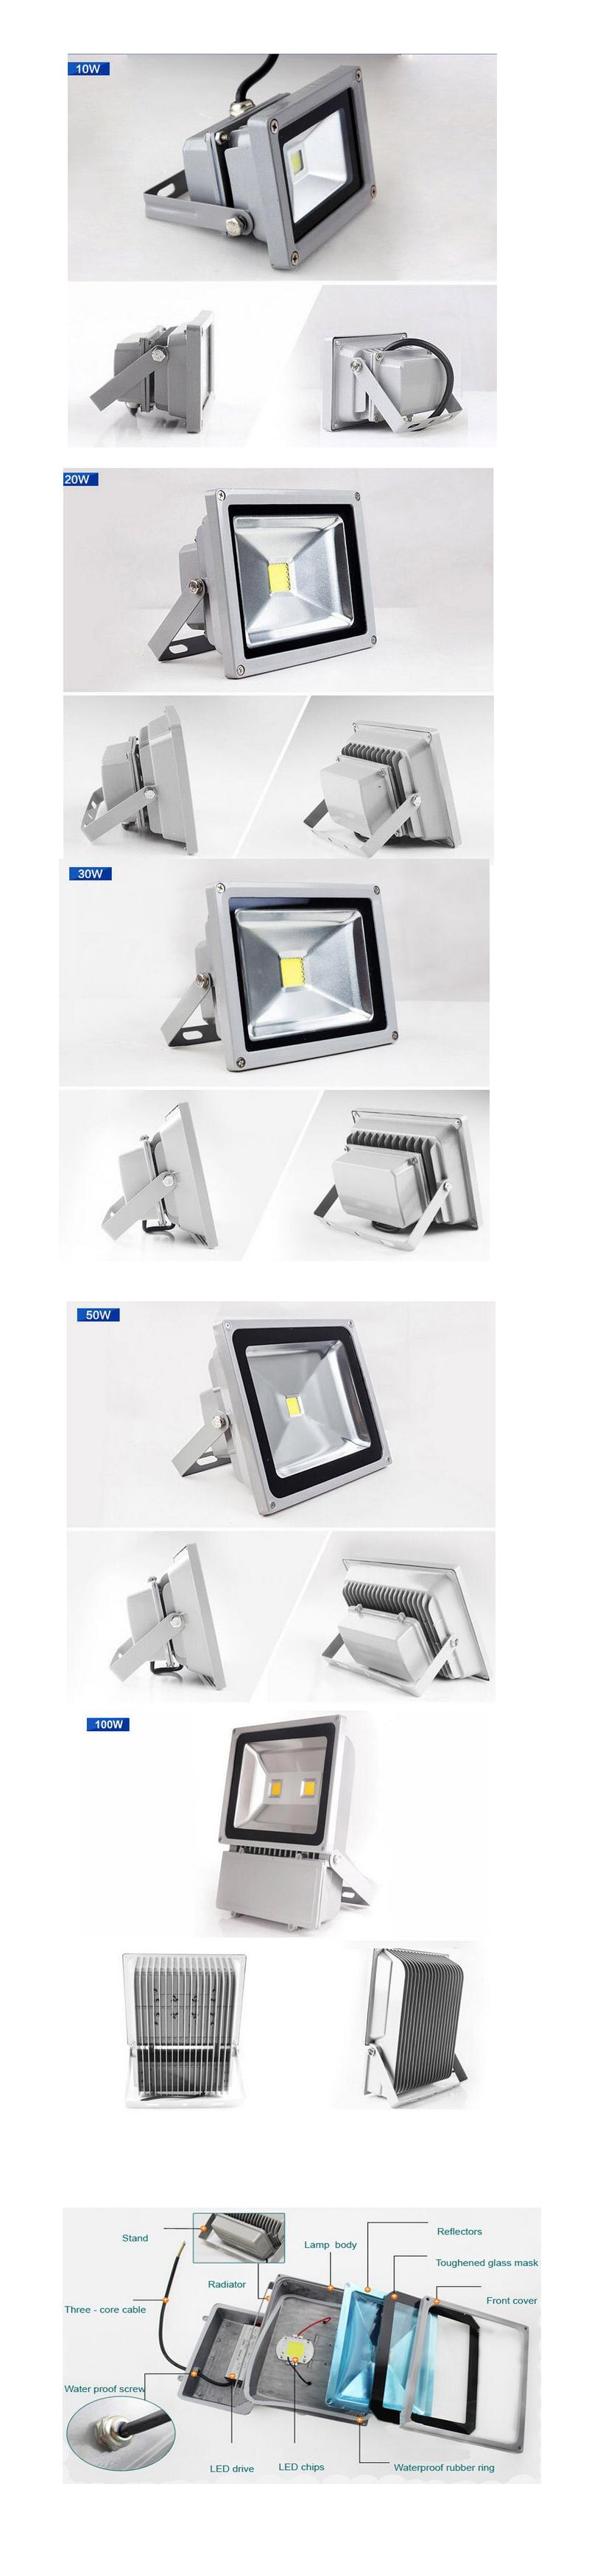 Hot Sale UV LED Flood Light with 395 Nm Wavelength